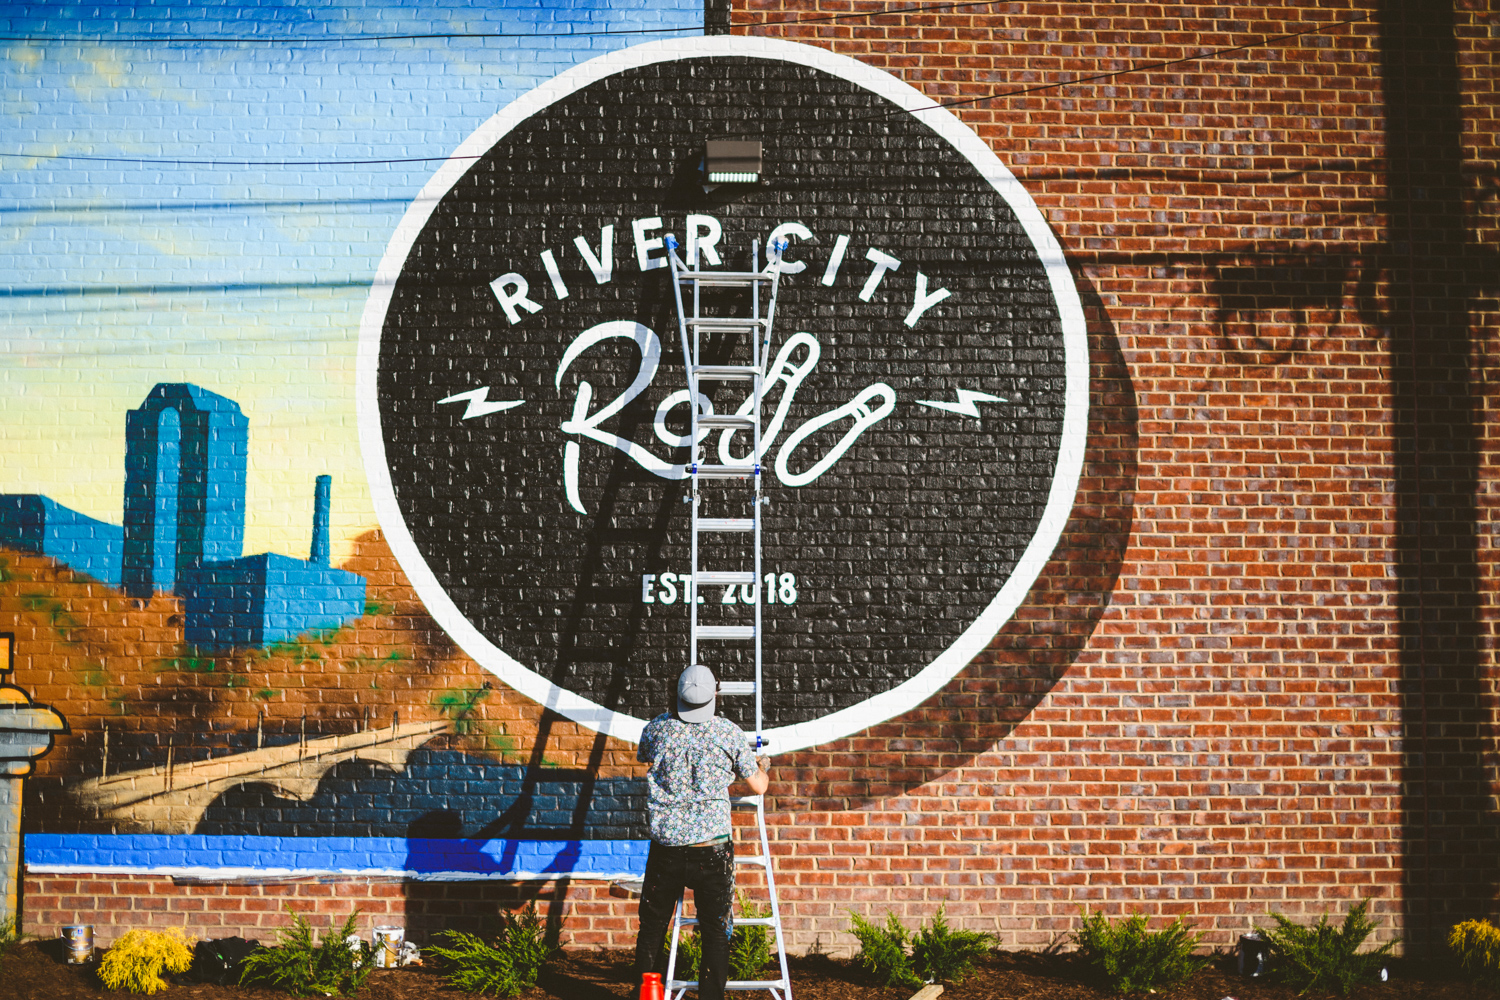 031 - river city roll opening day richmond virginia photographer.jpg